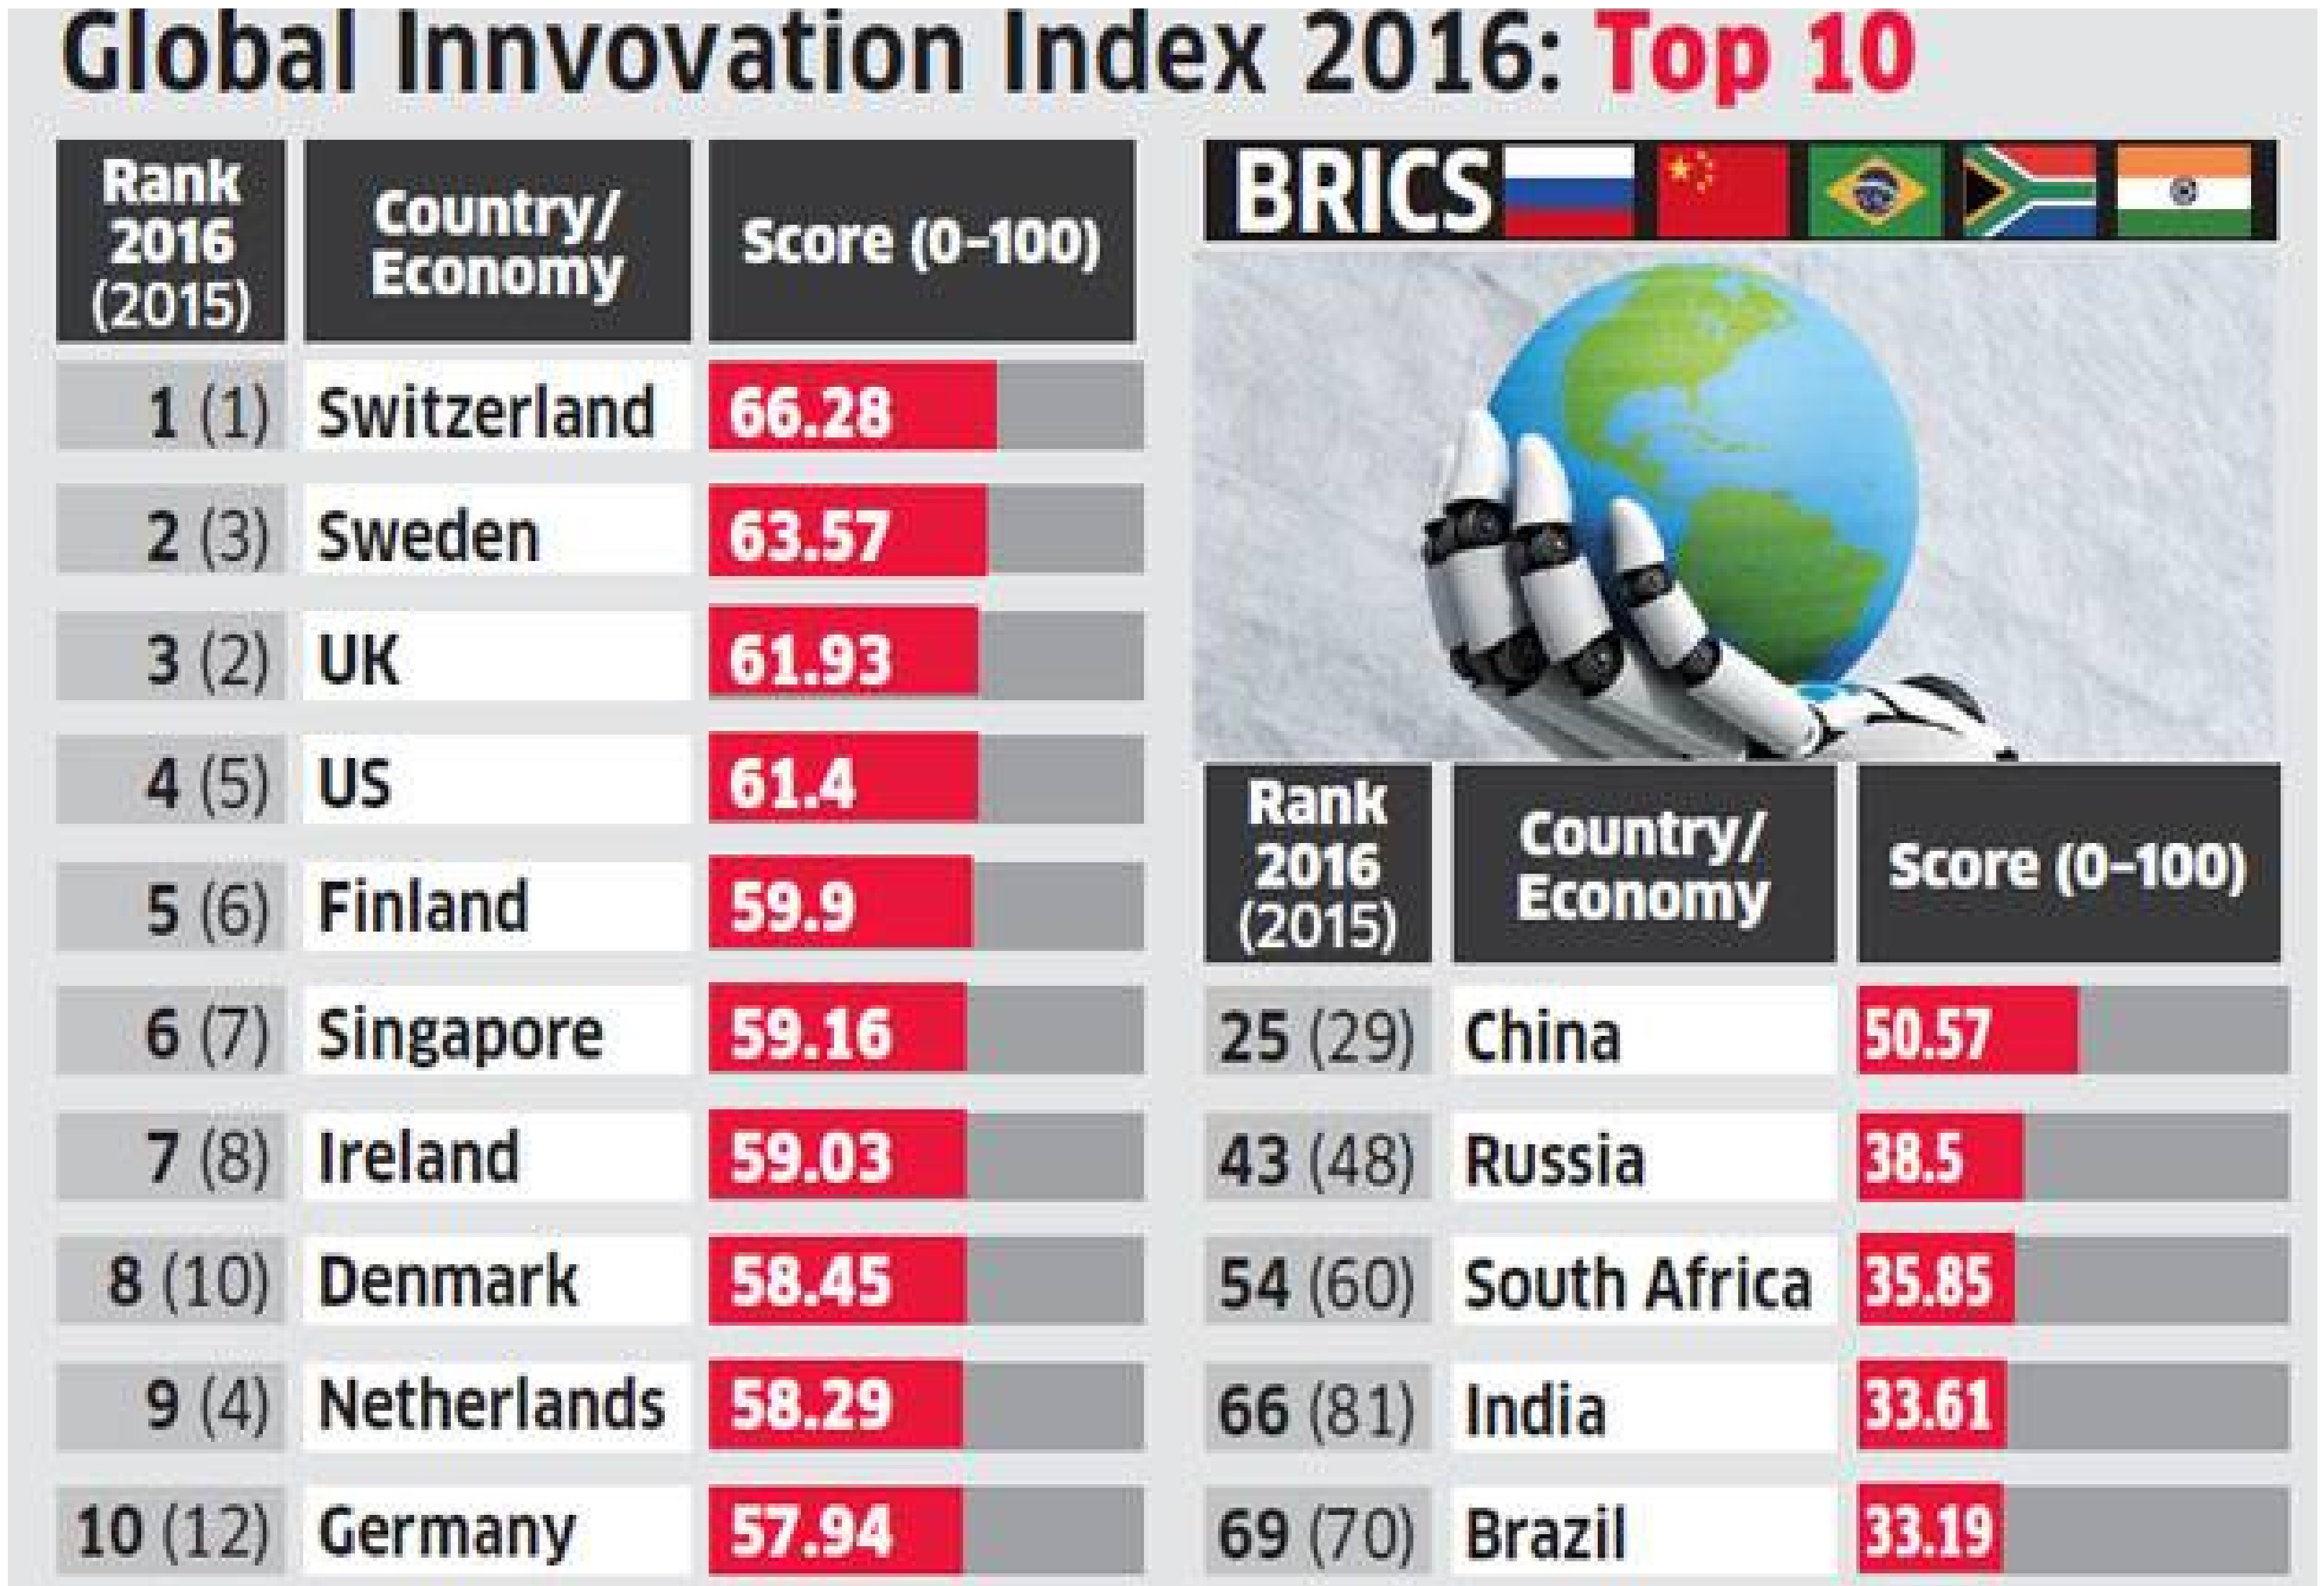 India ranked 66th in the 2016 Global Innovation Index